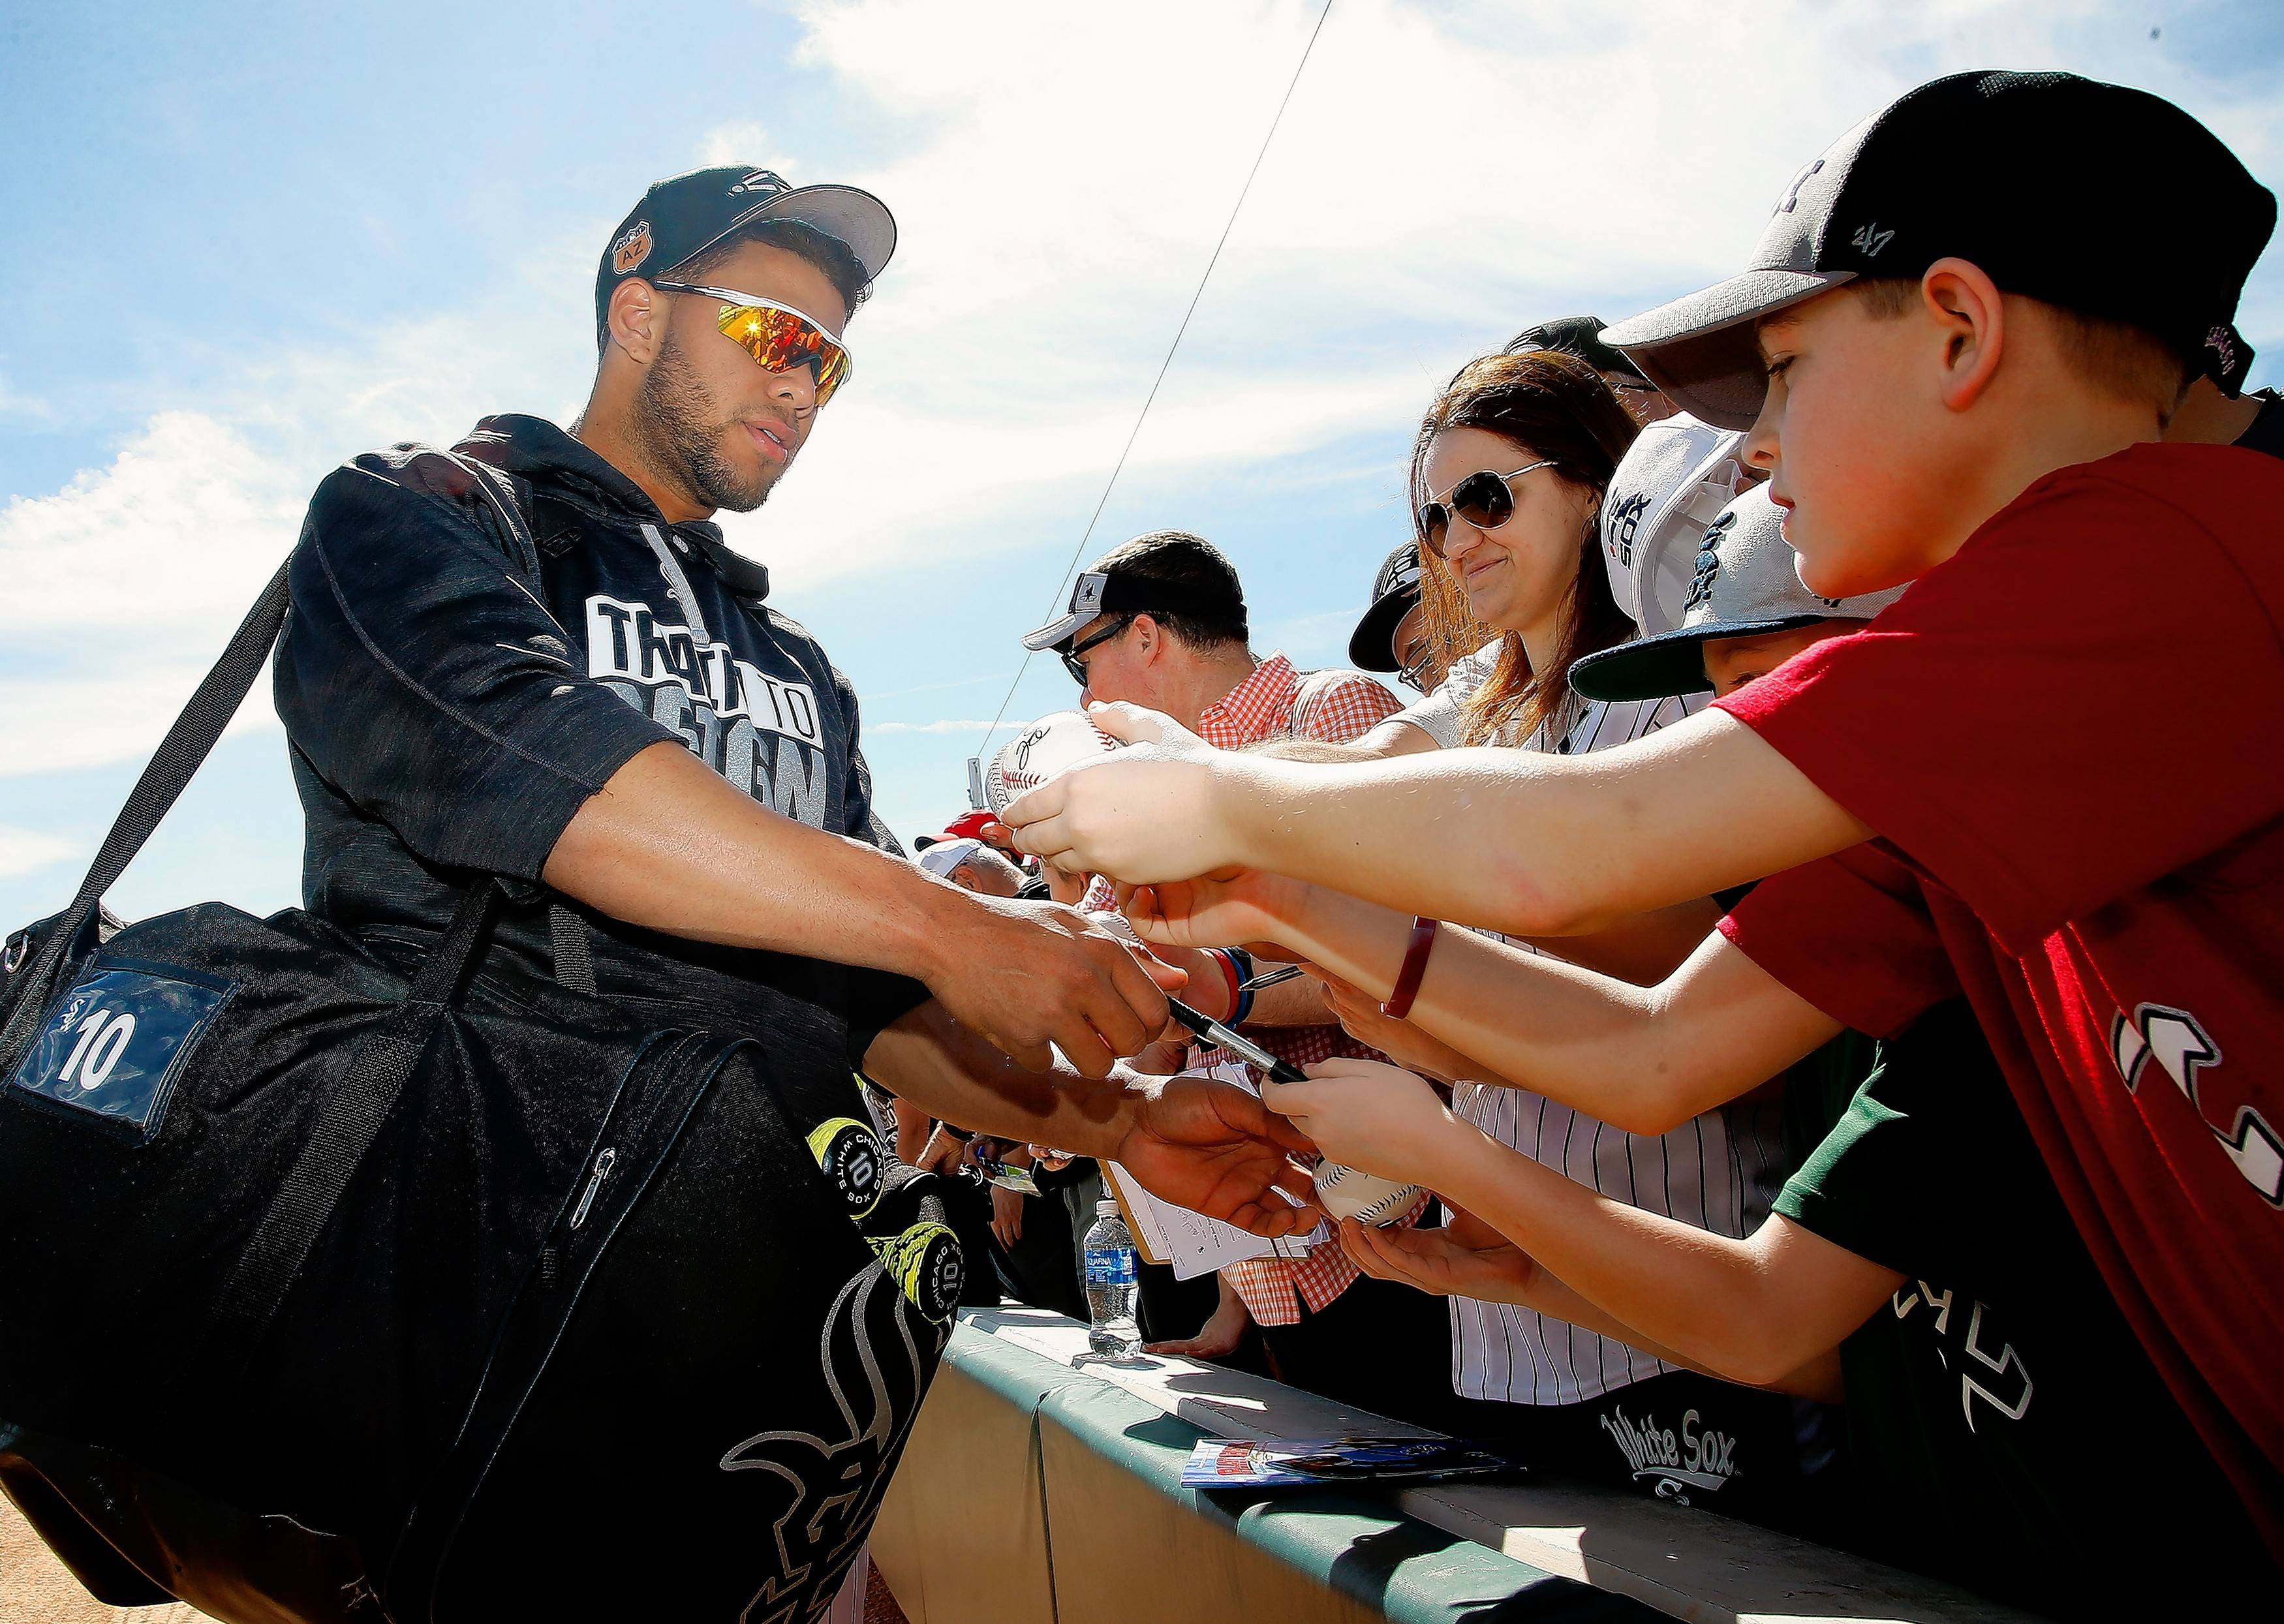 Chicago White Sox second baseman Yoan Moncada signs autographs for fans prior to a spring training baseball game against the Los Angeles Angels Saturday, March 4, in Glendale, Ariz.